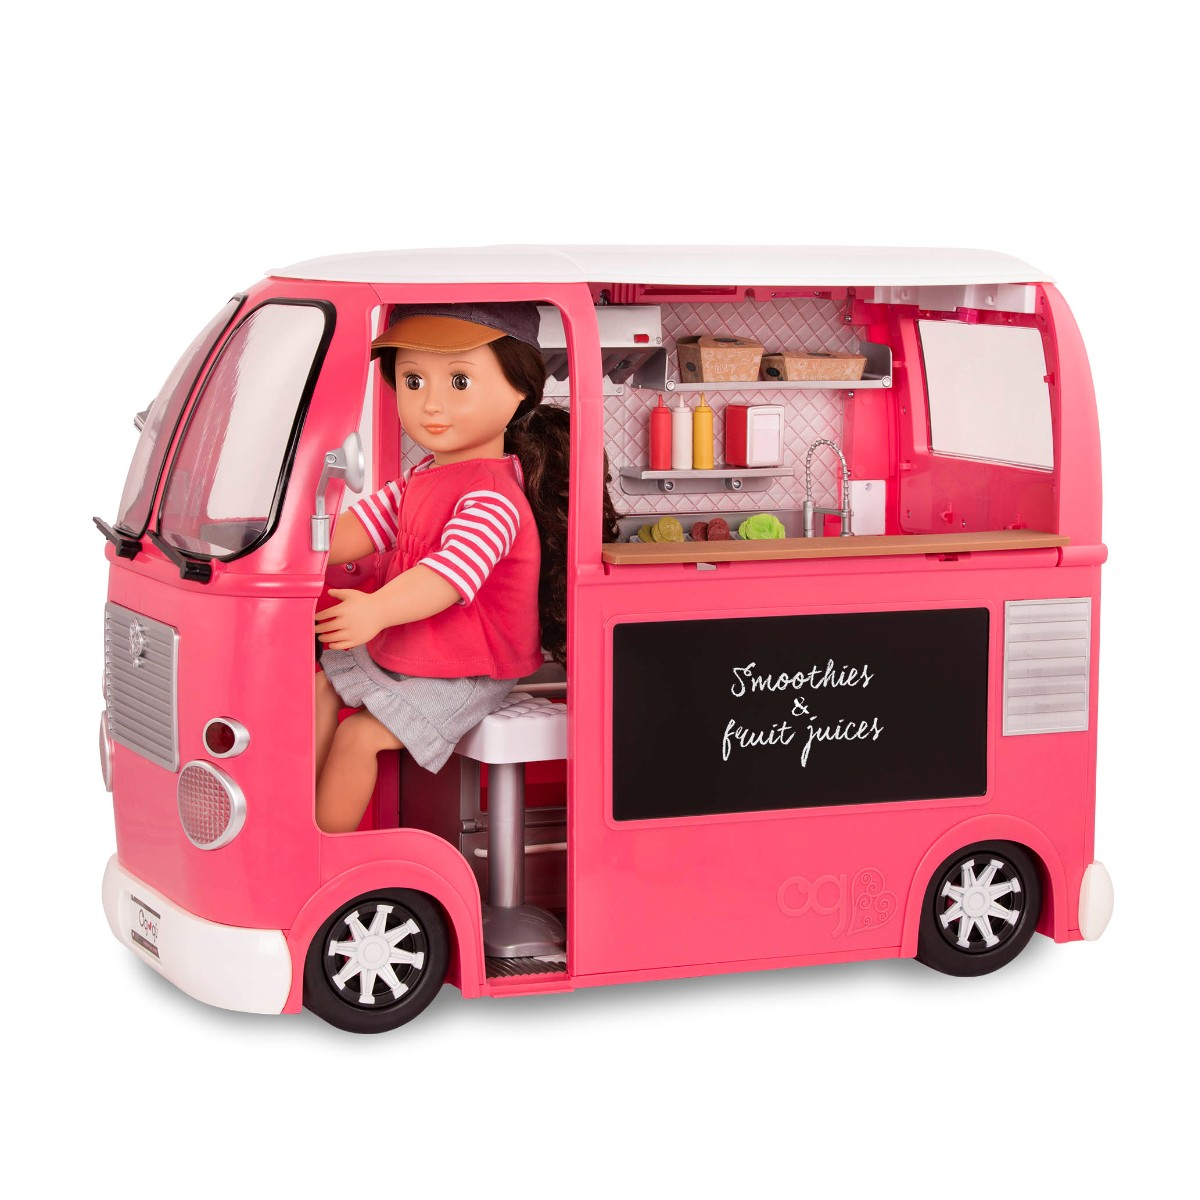 Our Generation Food Truck, pink